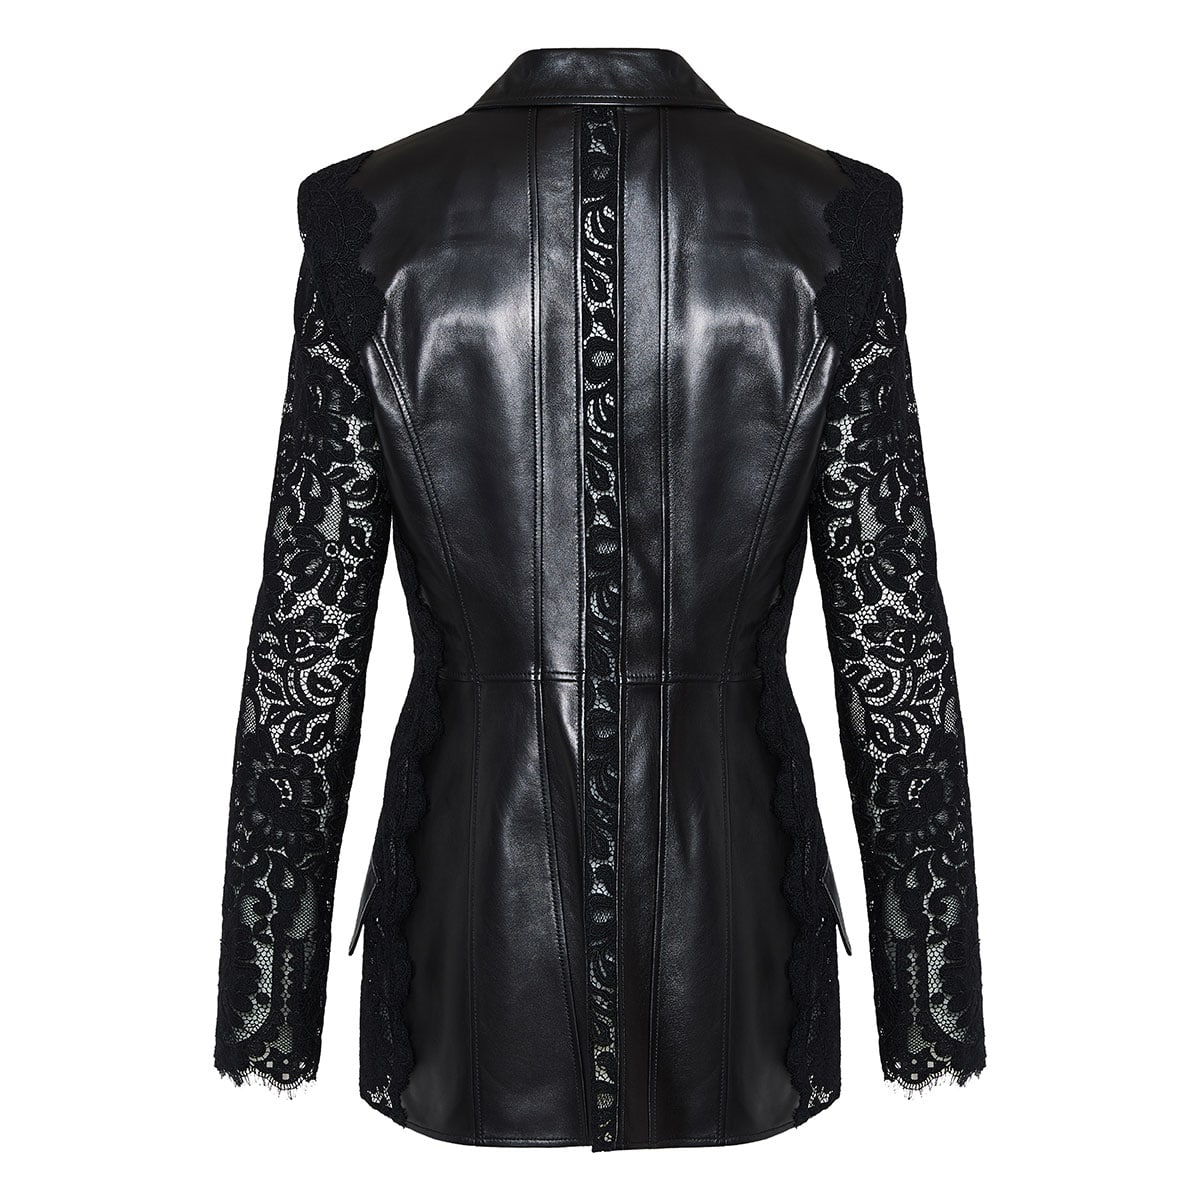 Lace-paneled leather blazer